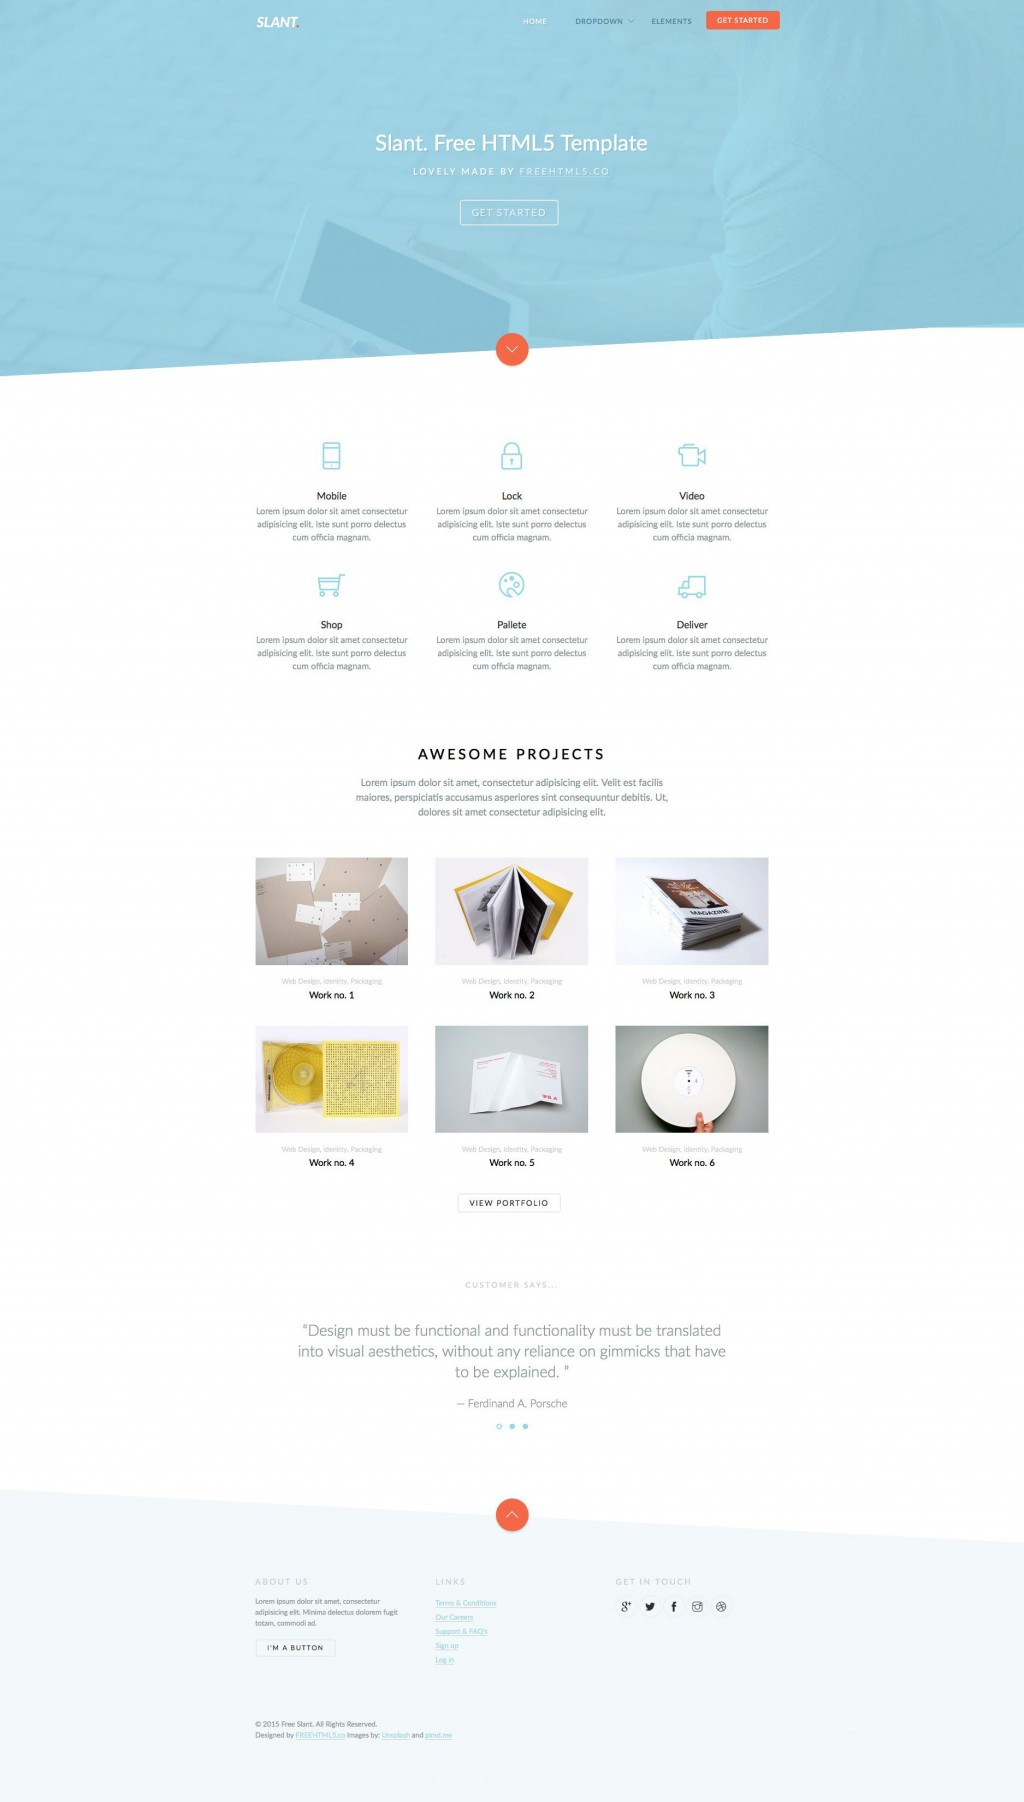 006 Awesome Free Responsive Website Template Download Html And Cs Jquery High Resolution  For It CompanyLarge